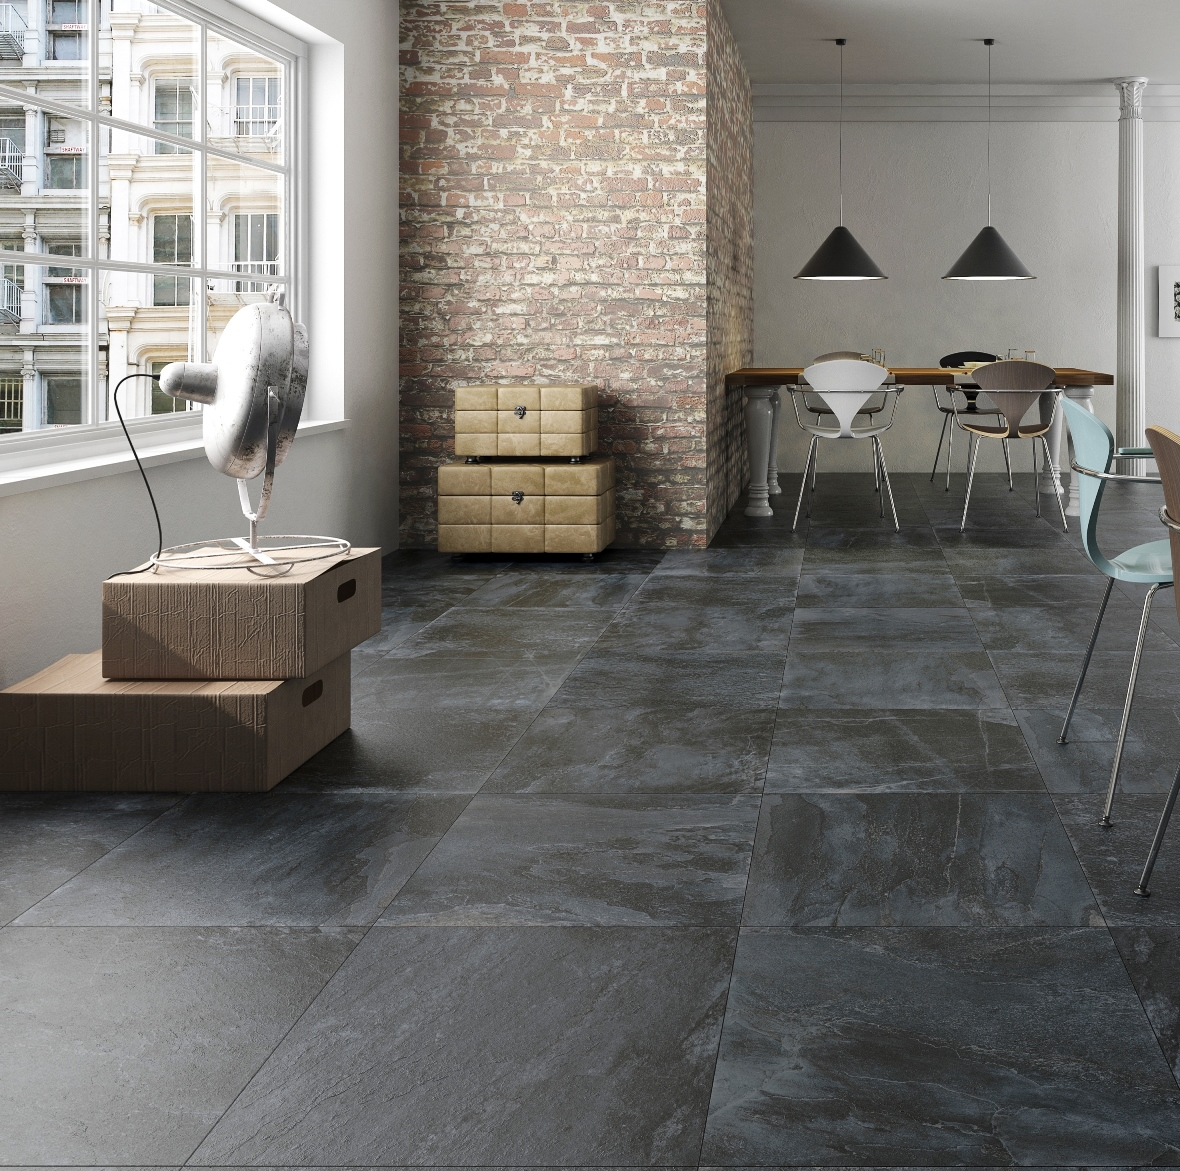 Tile Mountains Latest Flooring Trends Revealed A